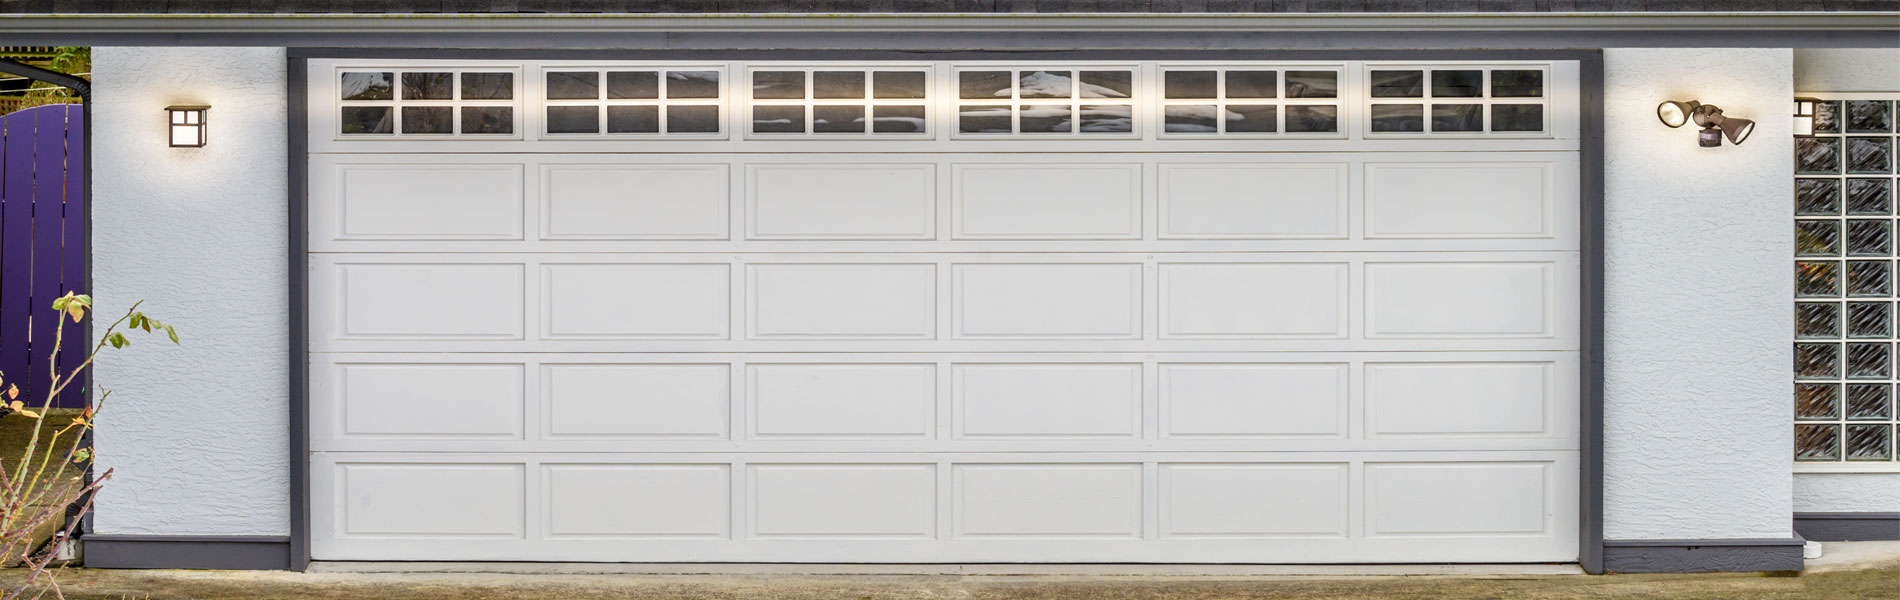 Exclusive Garage Door Service, Peoria, AZ 888-723-5970